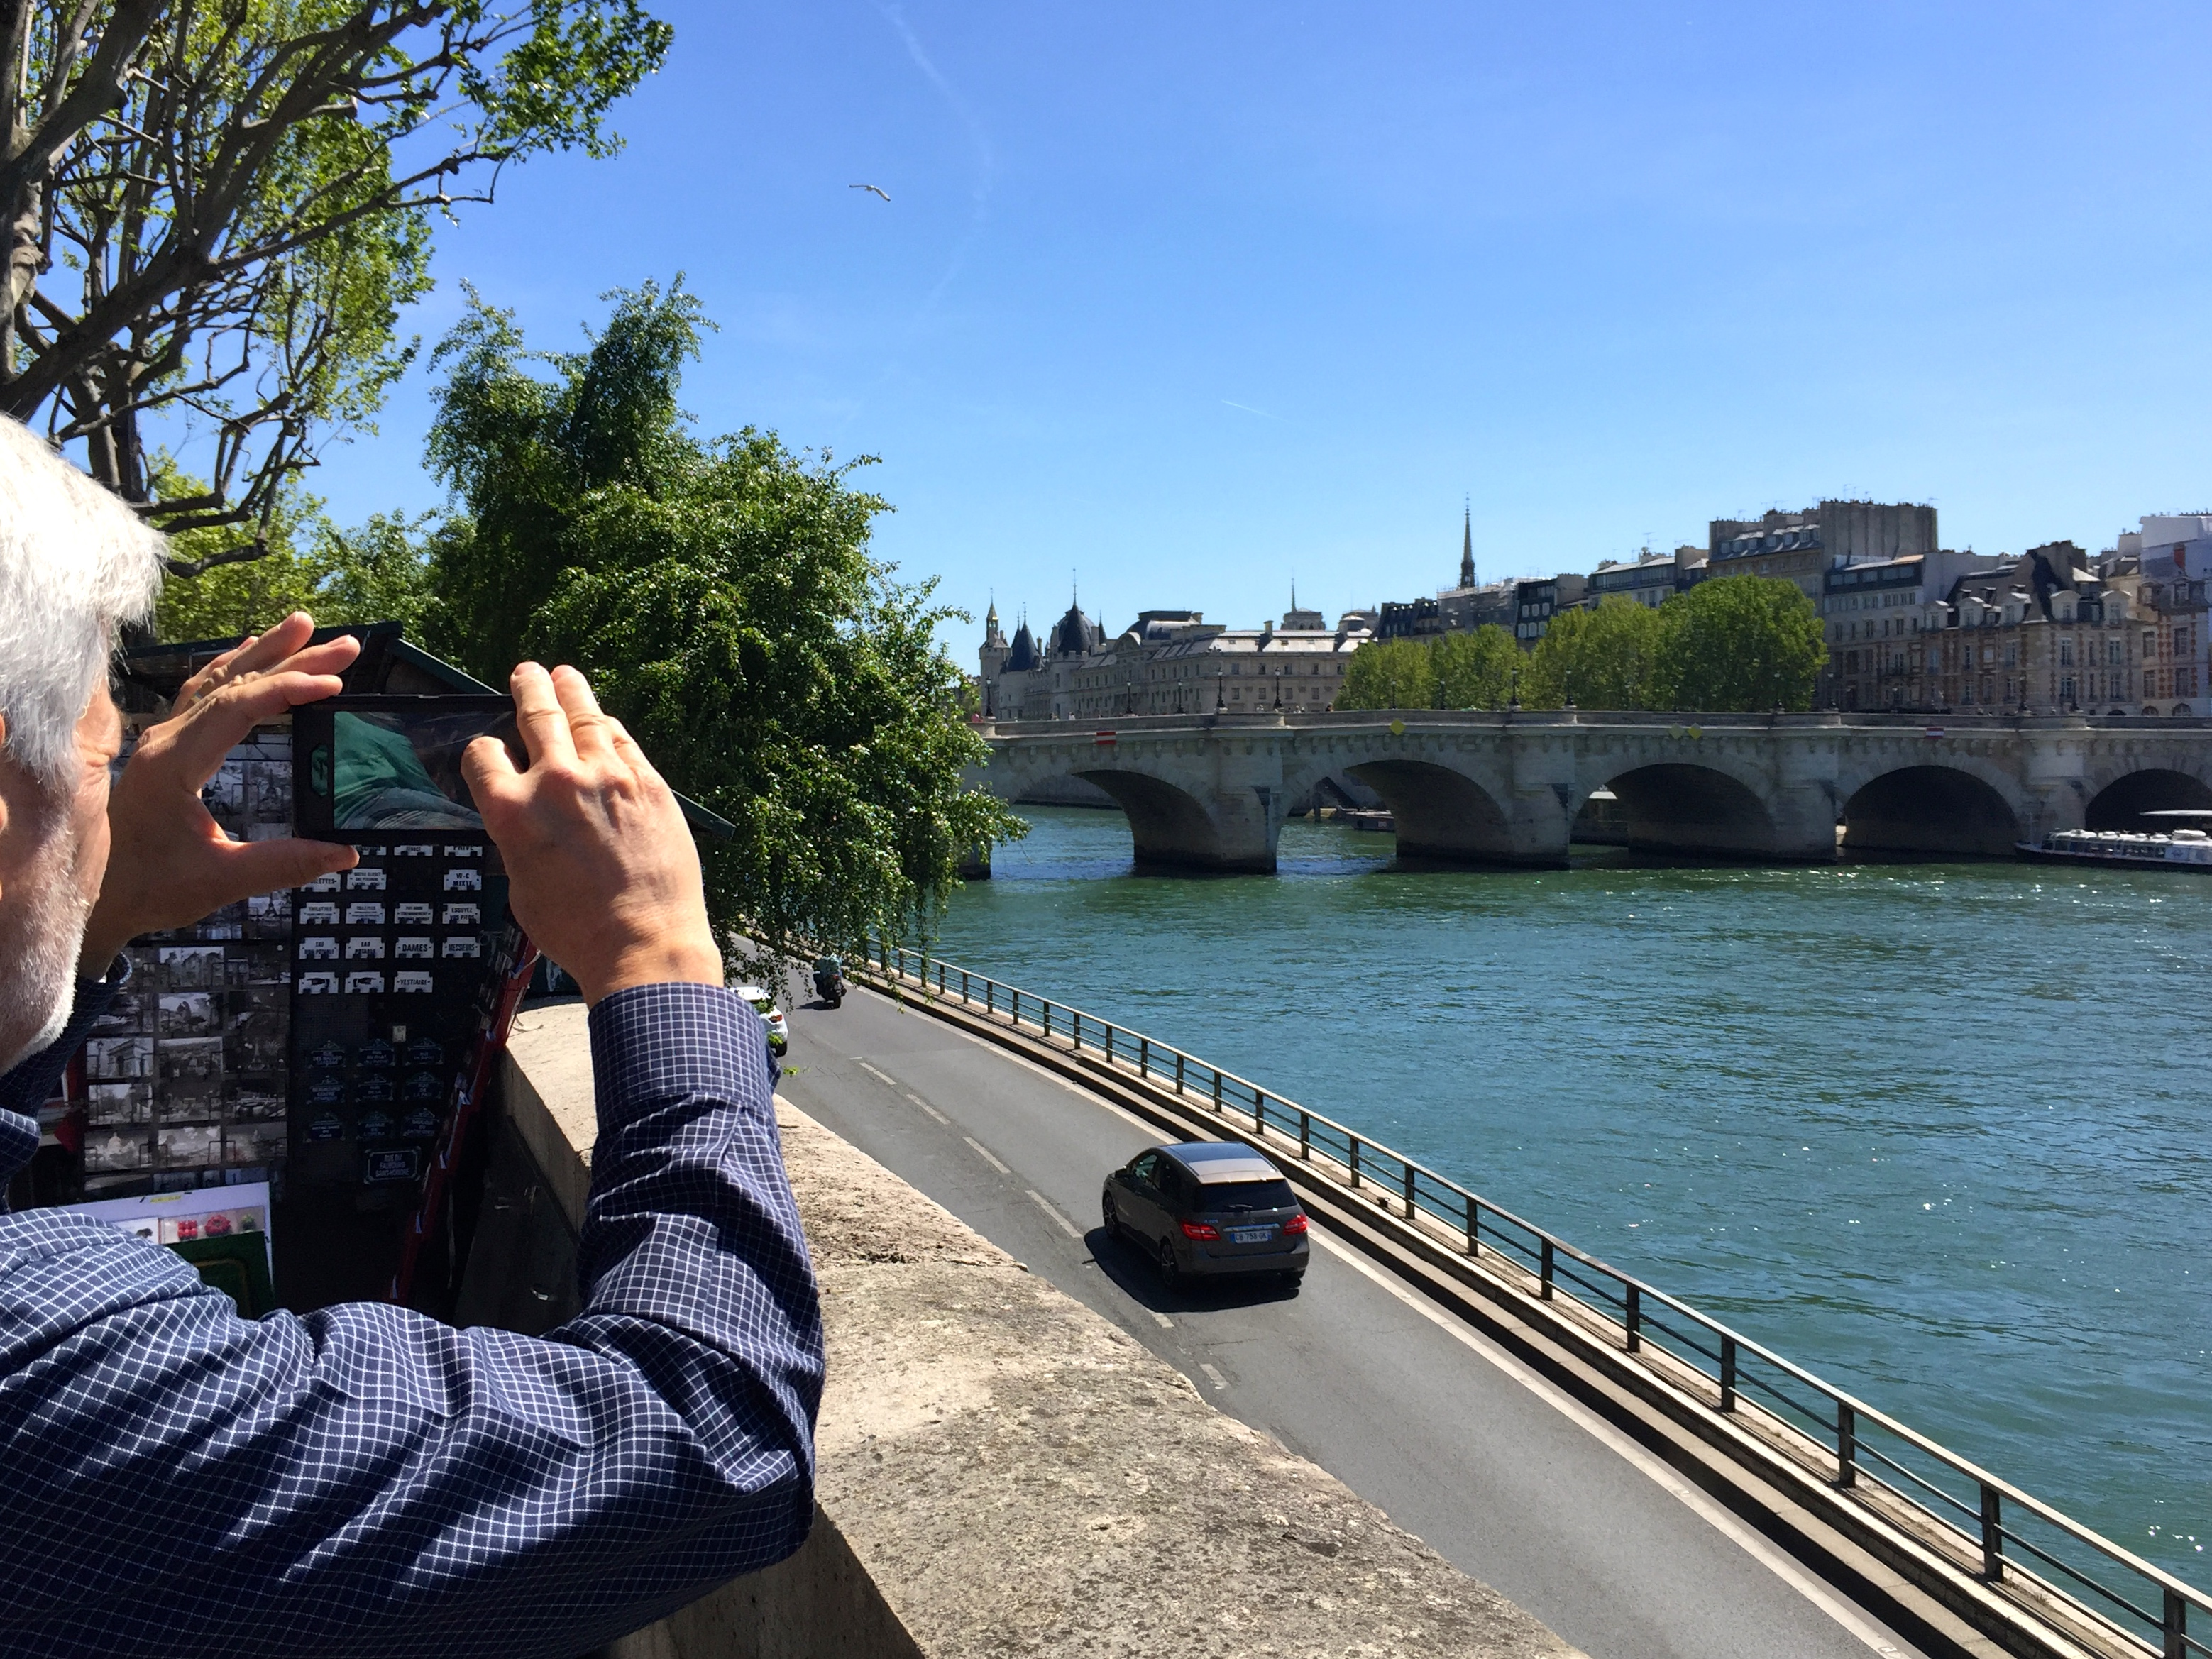 Taking picture of The Seine River